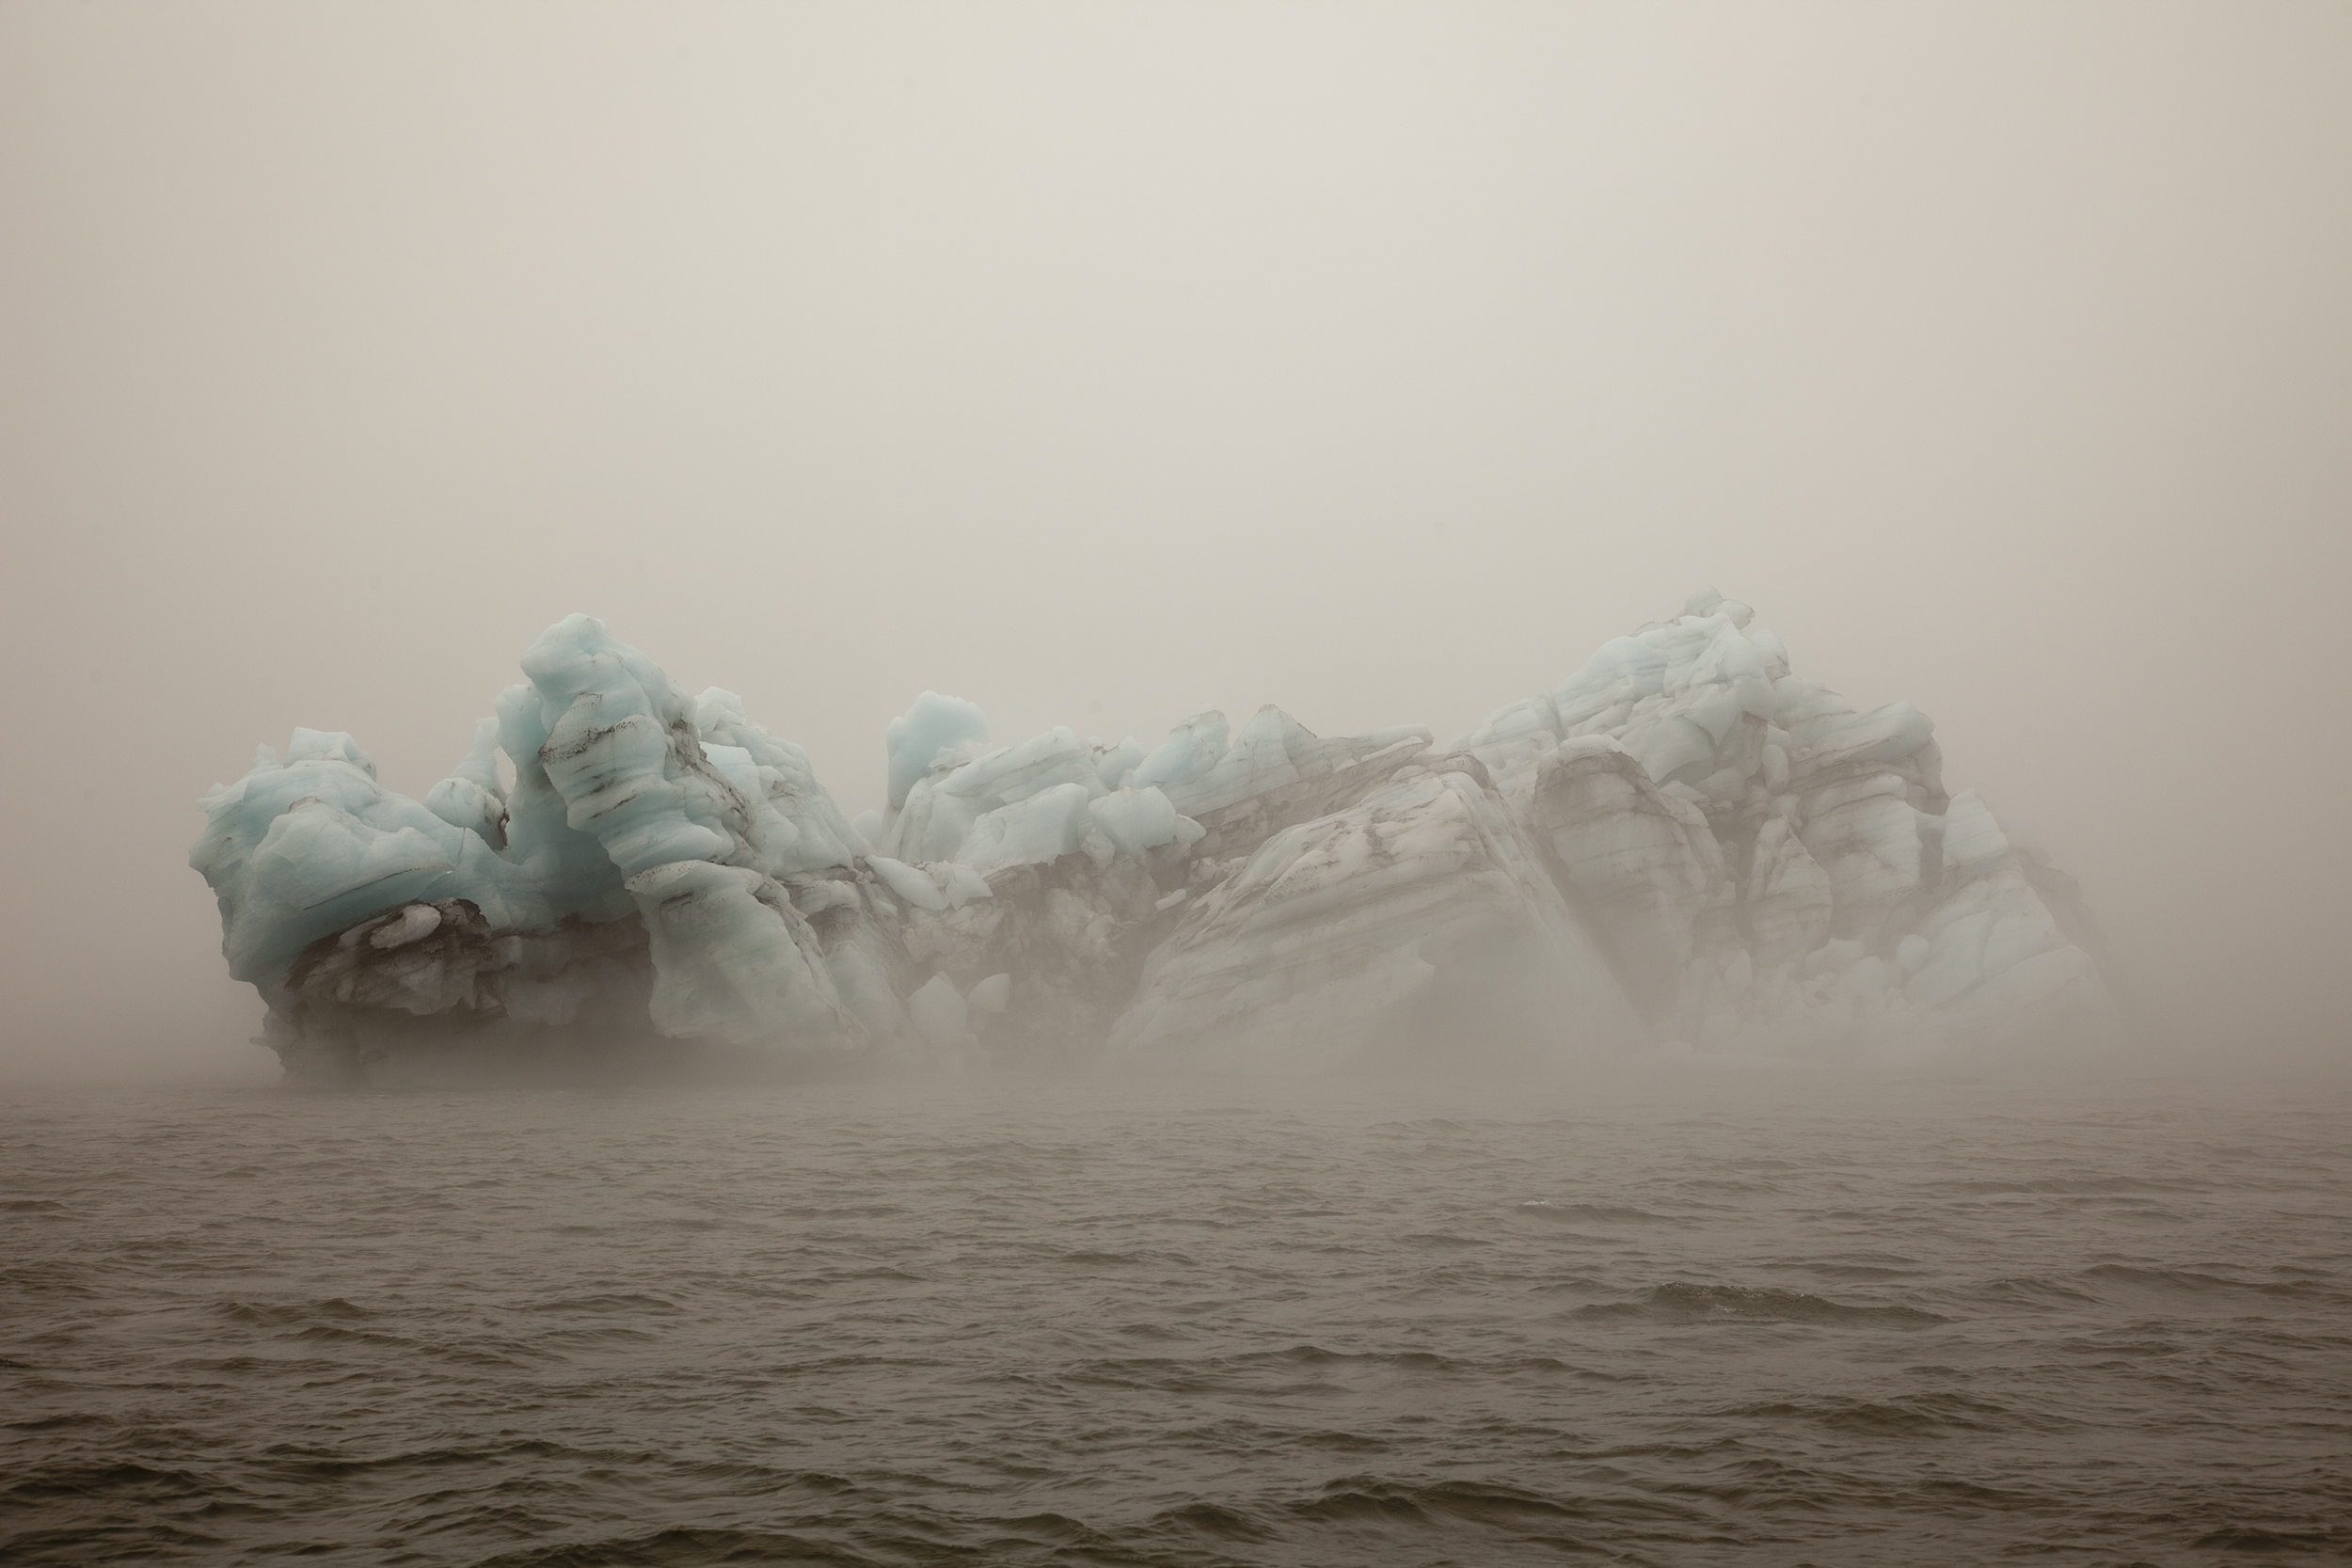 Gina Glover, Water held by the cold, Disko Bay Greenland